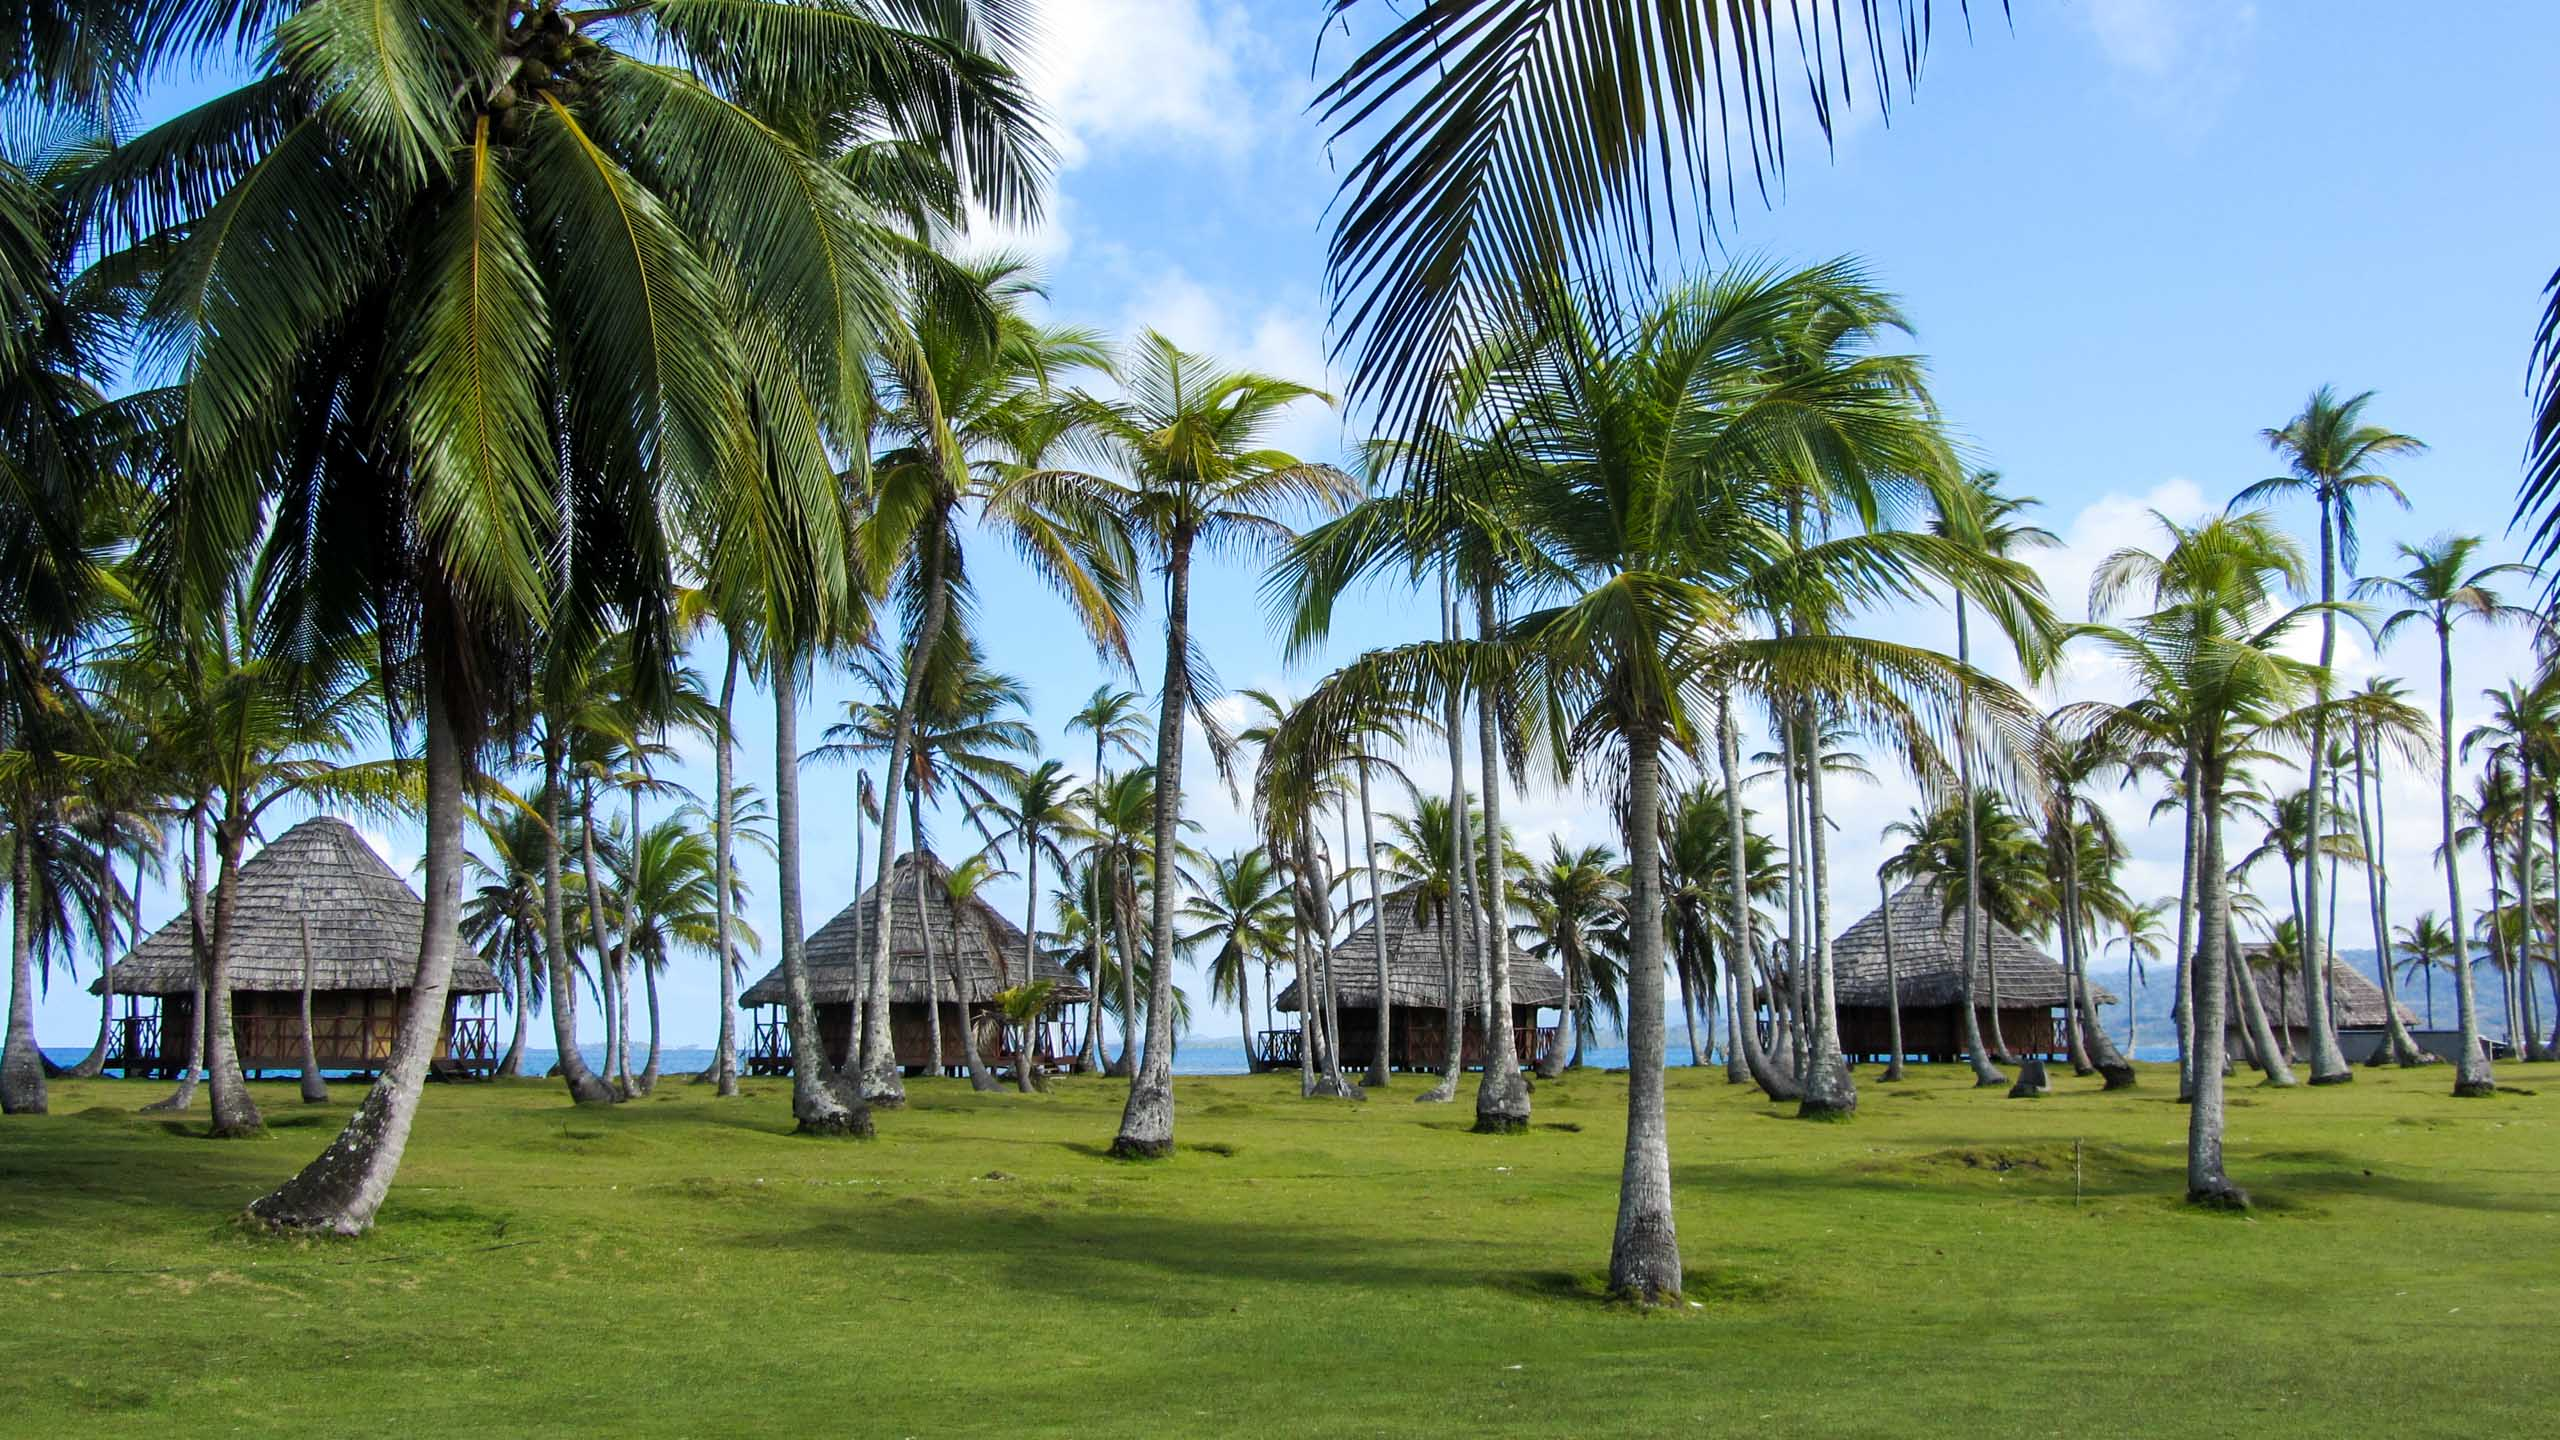 Cabins viewed through palm trees in Panama